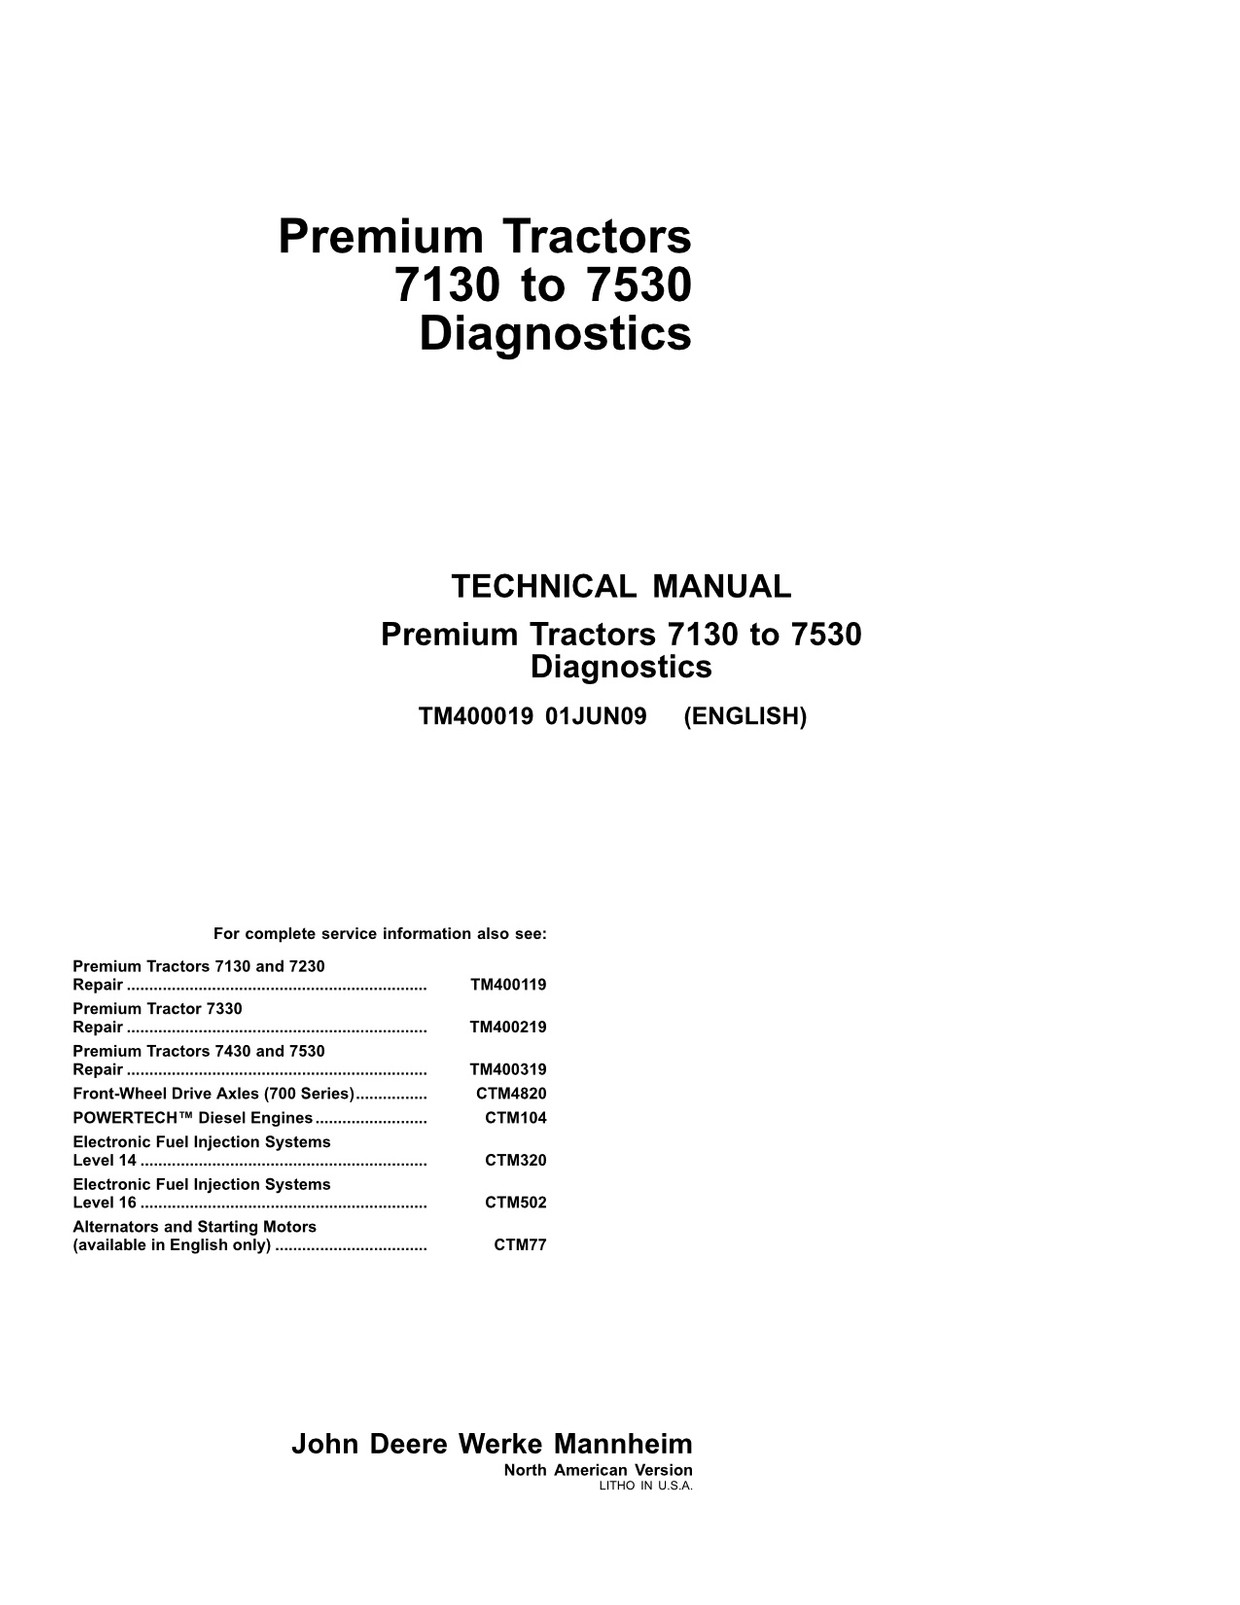 John Deere 7130 7230 7330 7430 7530 - Premium tractors - diagnostics manual - TM400019 - 5433 pages